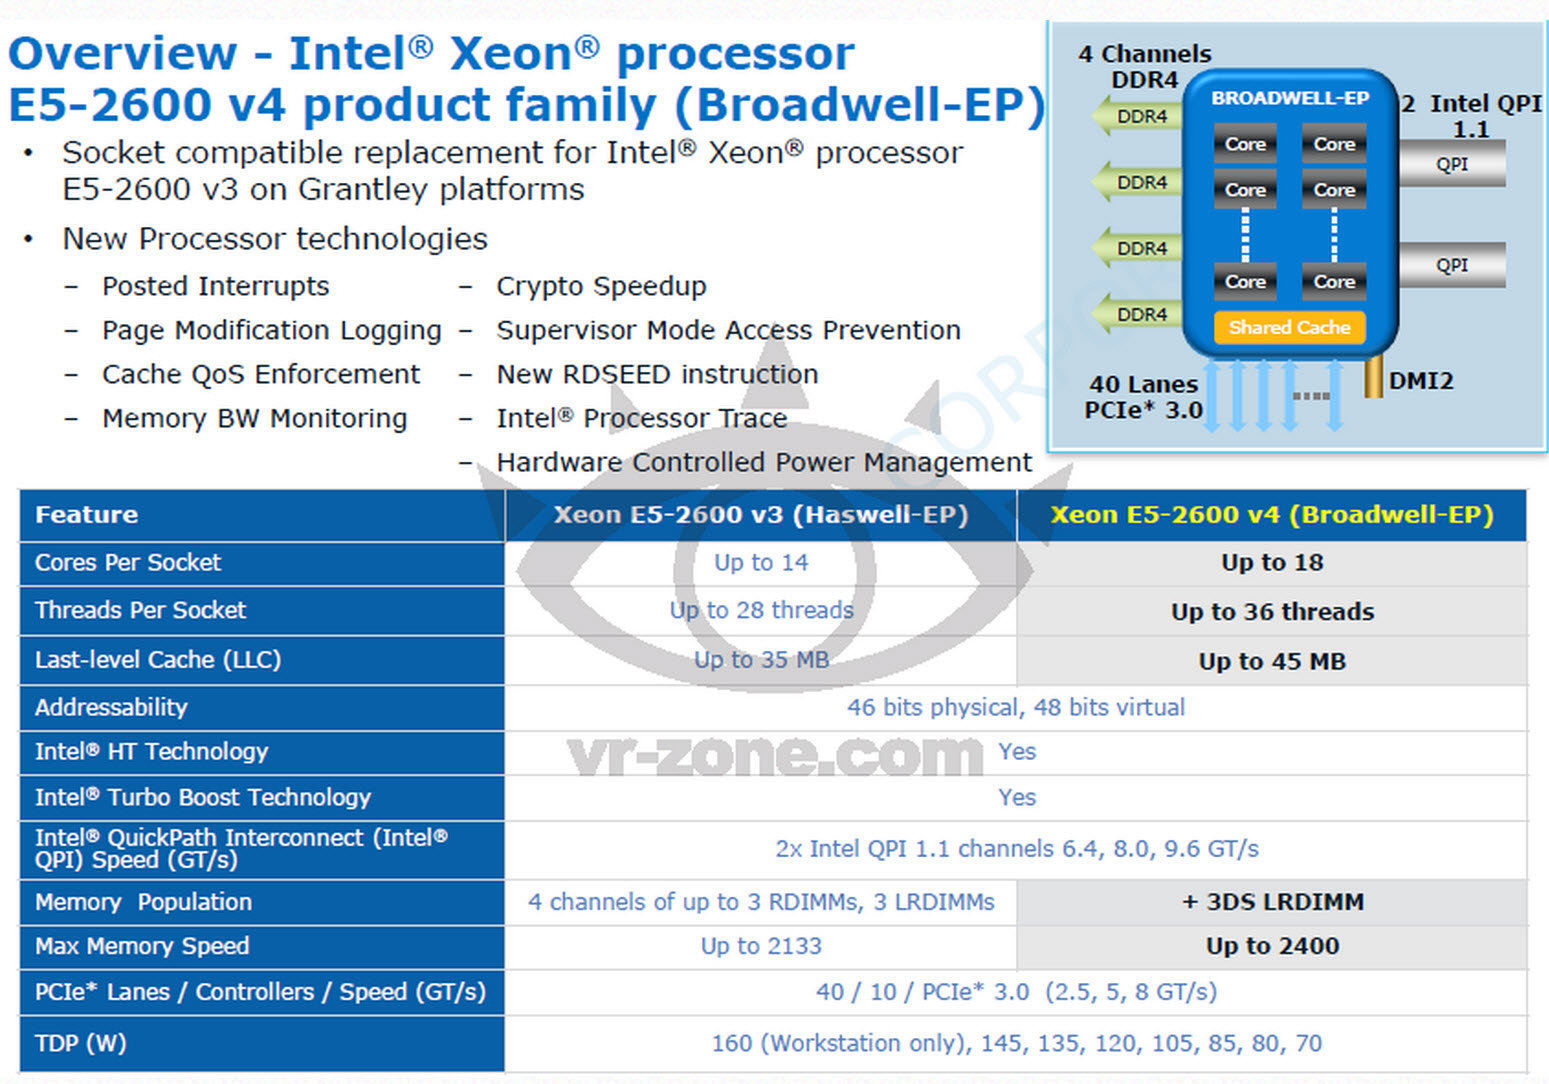 Intel Haswell-EP Xeon E5 V3 Processor Pictured - Only